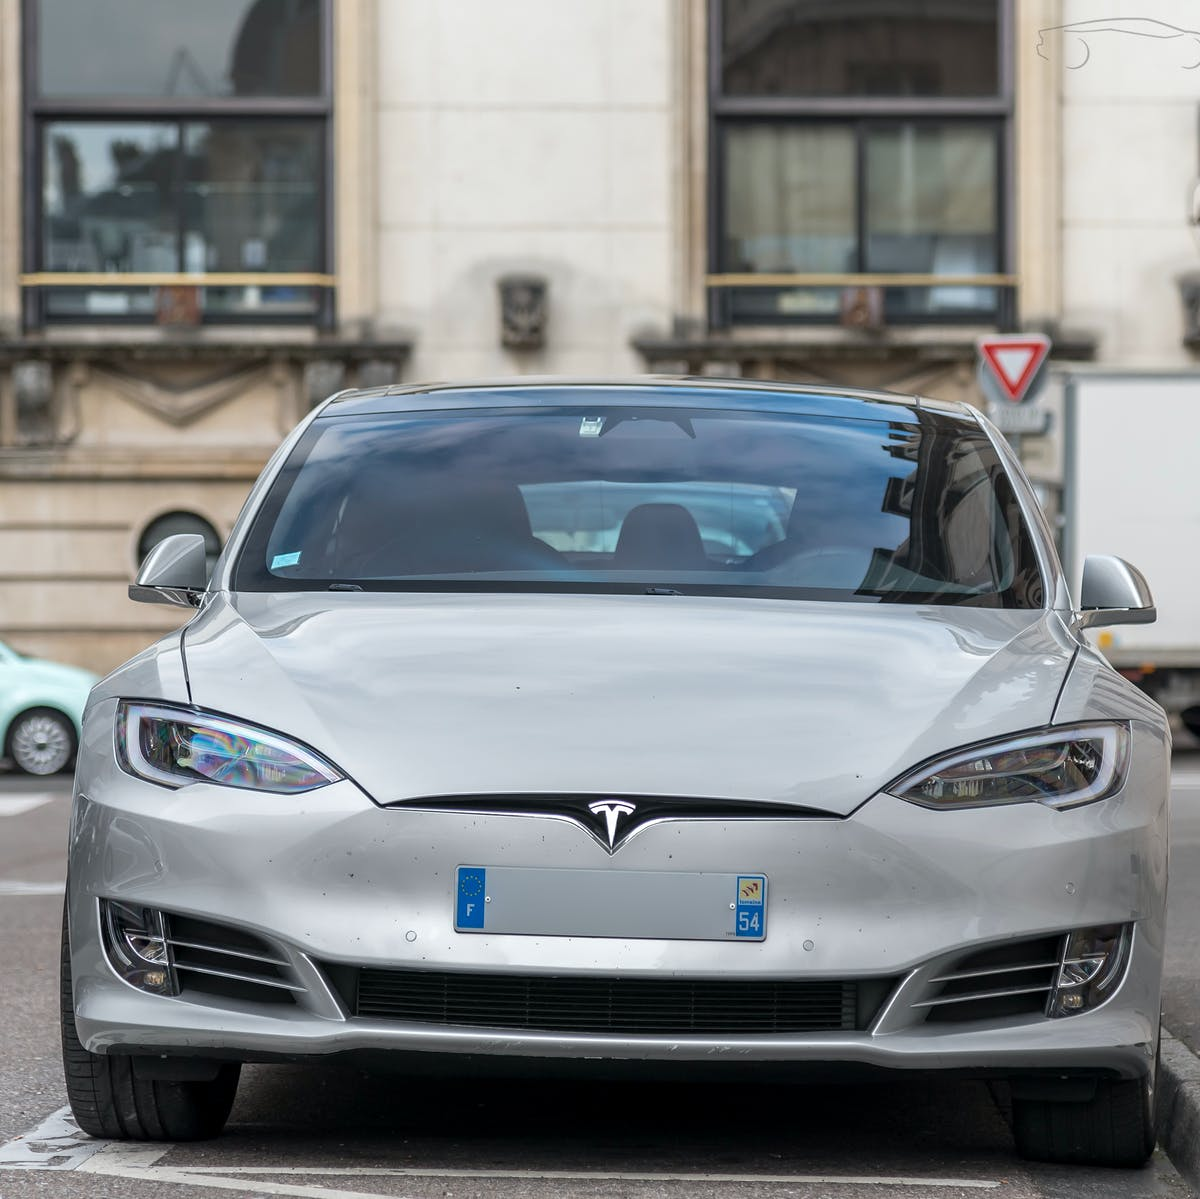 Tesla Model S How New Car Reaches 370 Miles Range With Same Size Battery